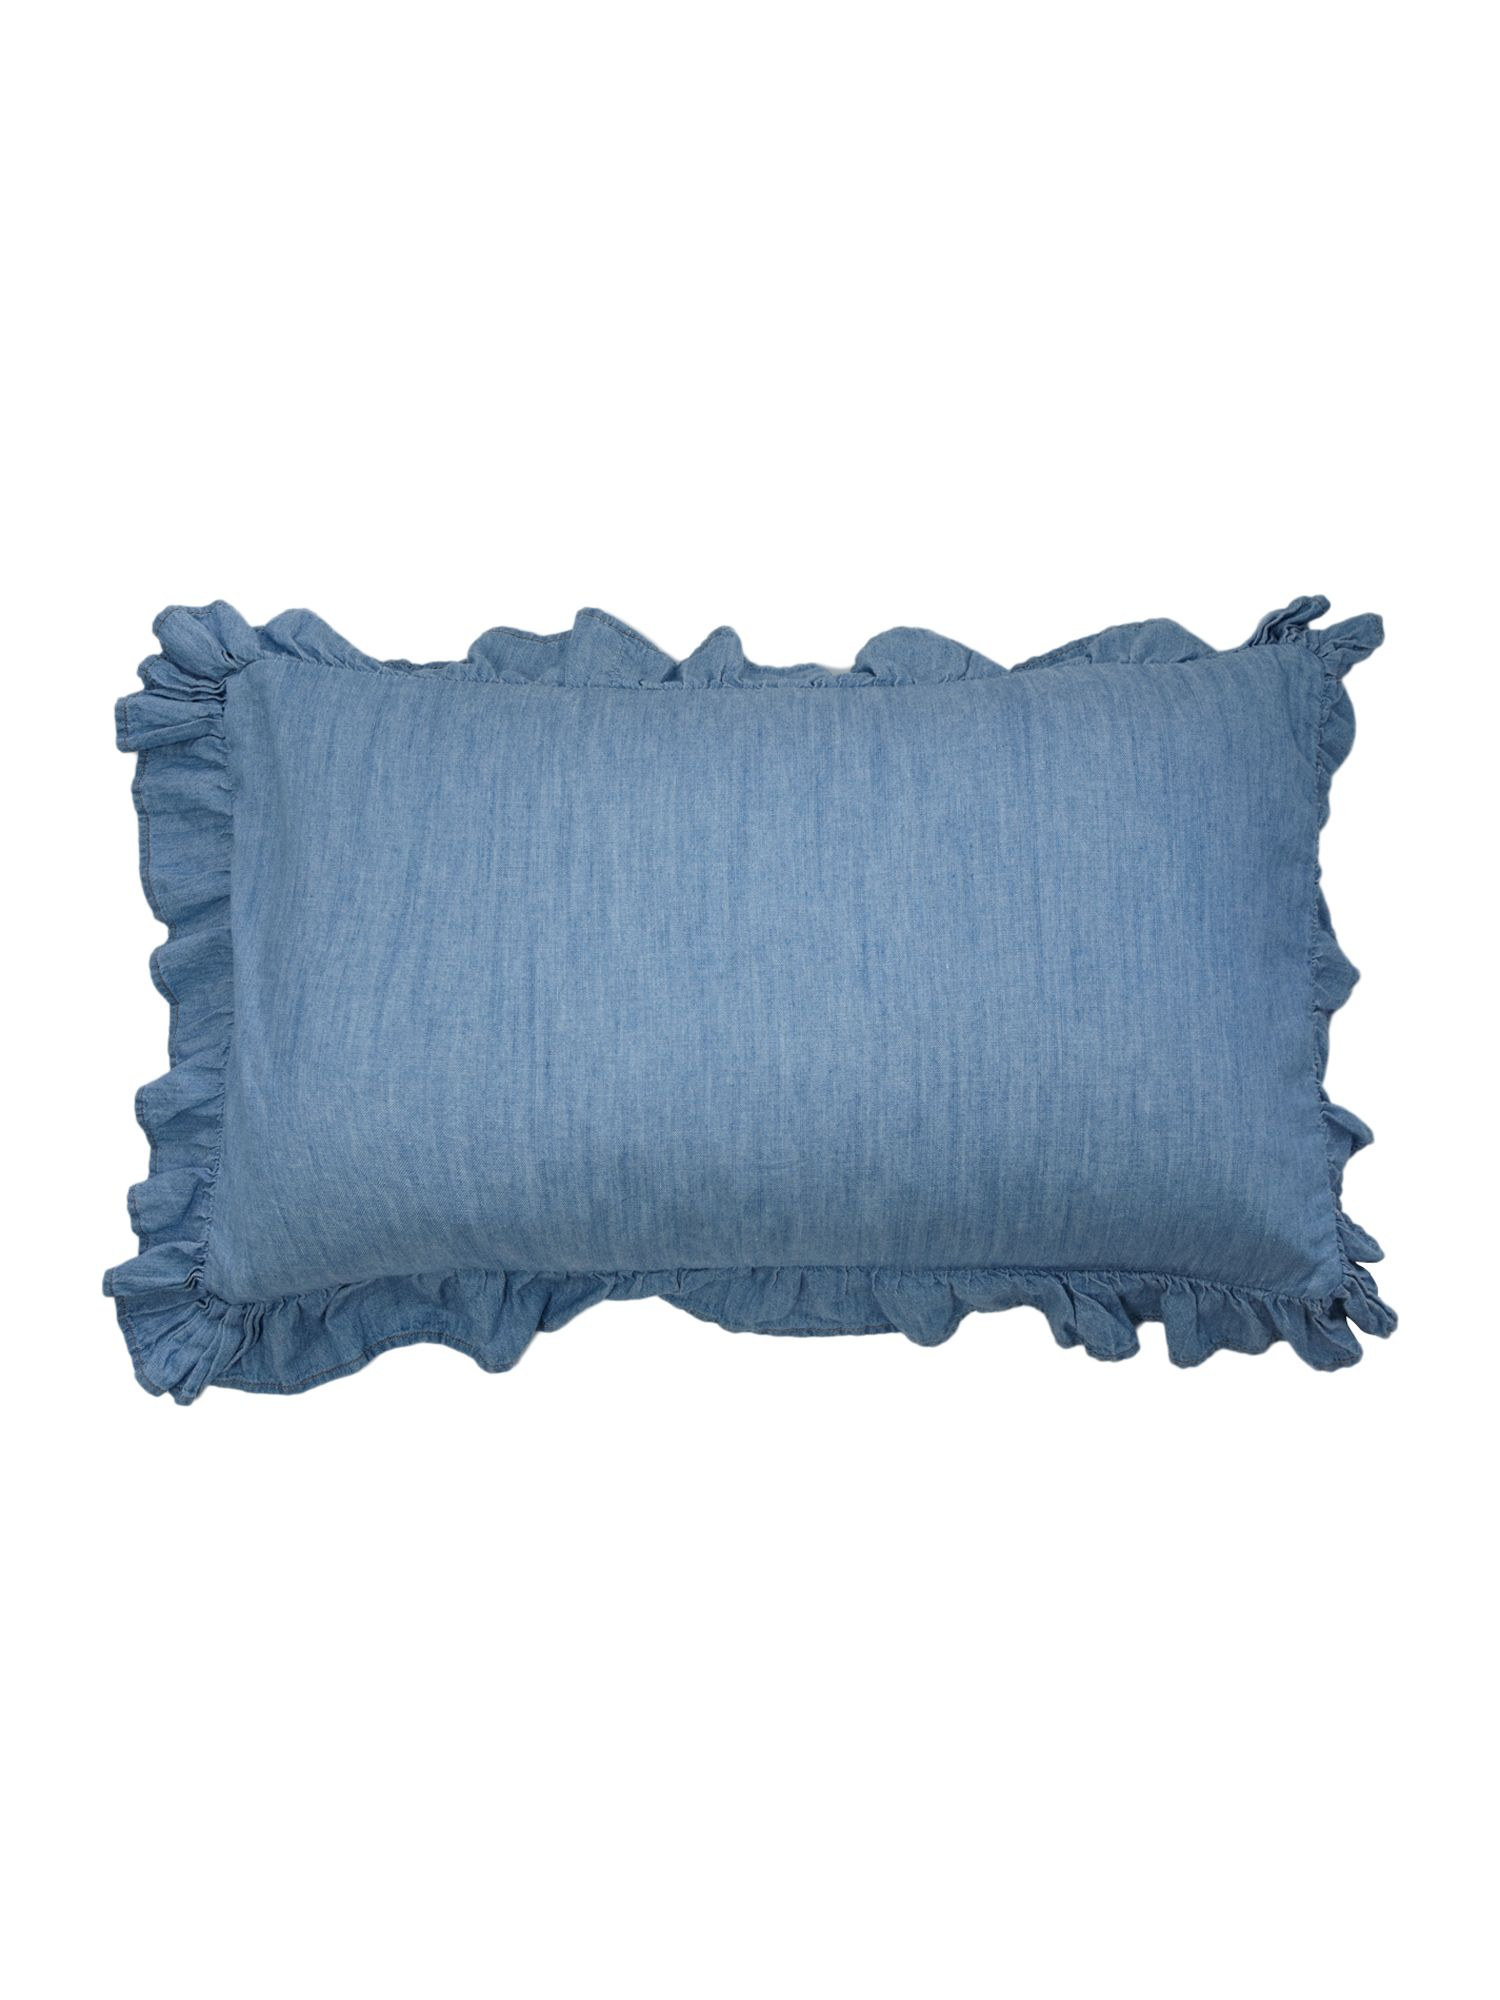 Pretty denim cushion